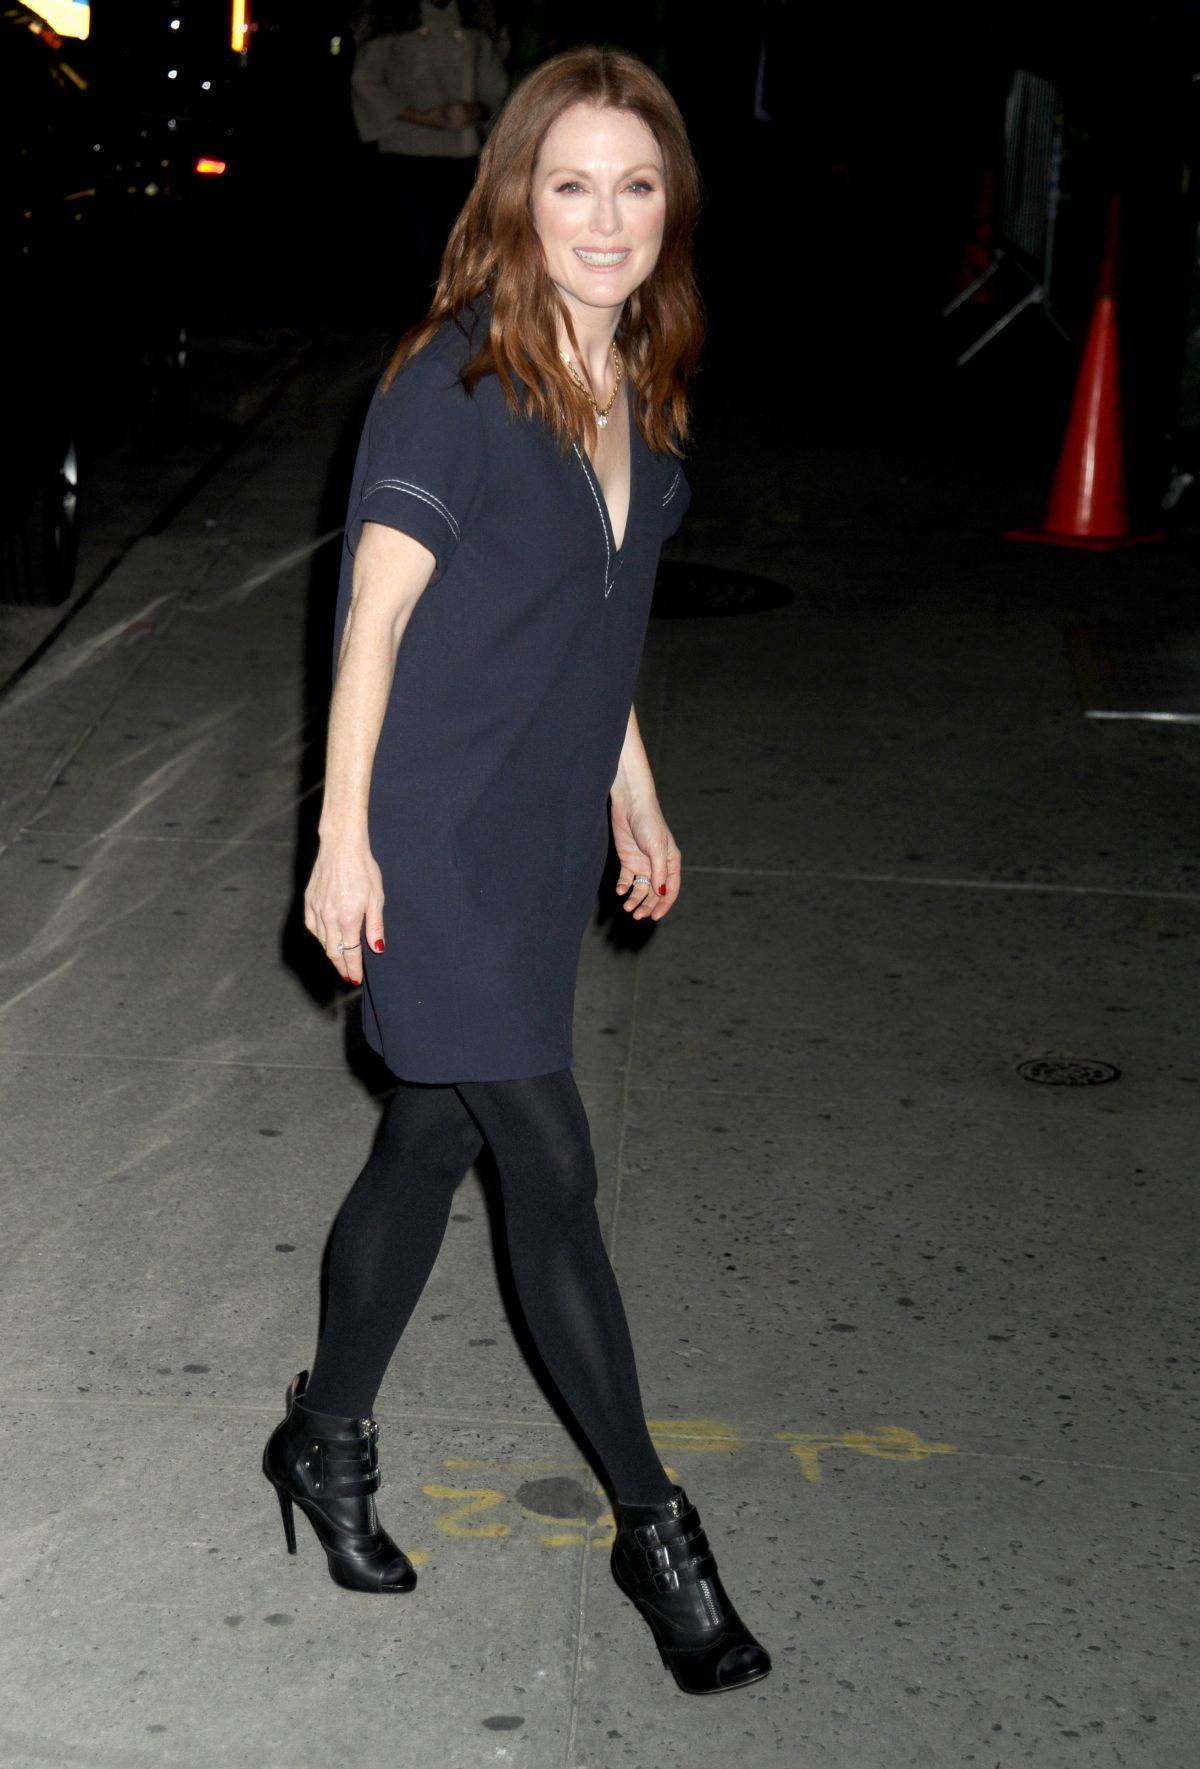 JULIANNE MOORE Arrives at The Late Show in New York 11/17/2015